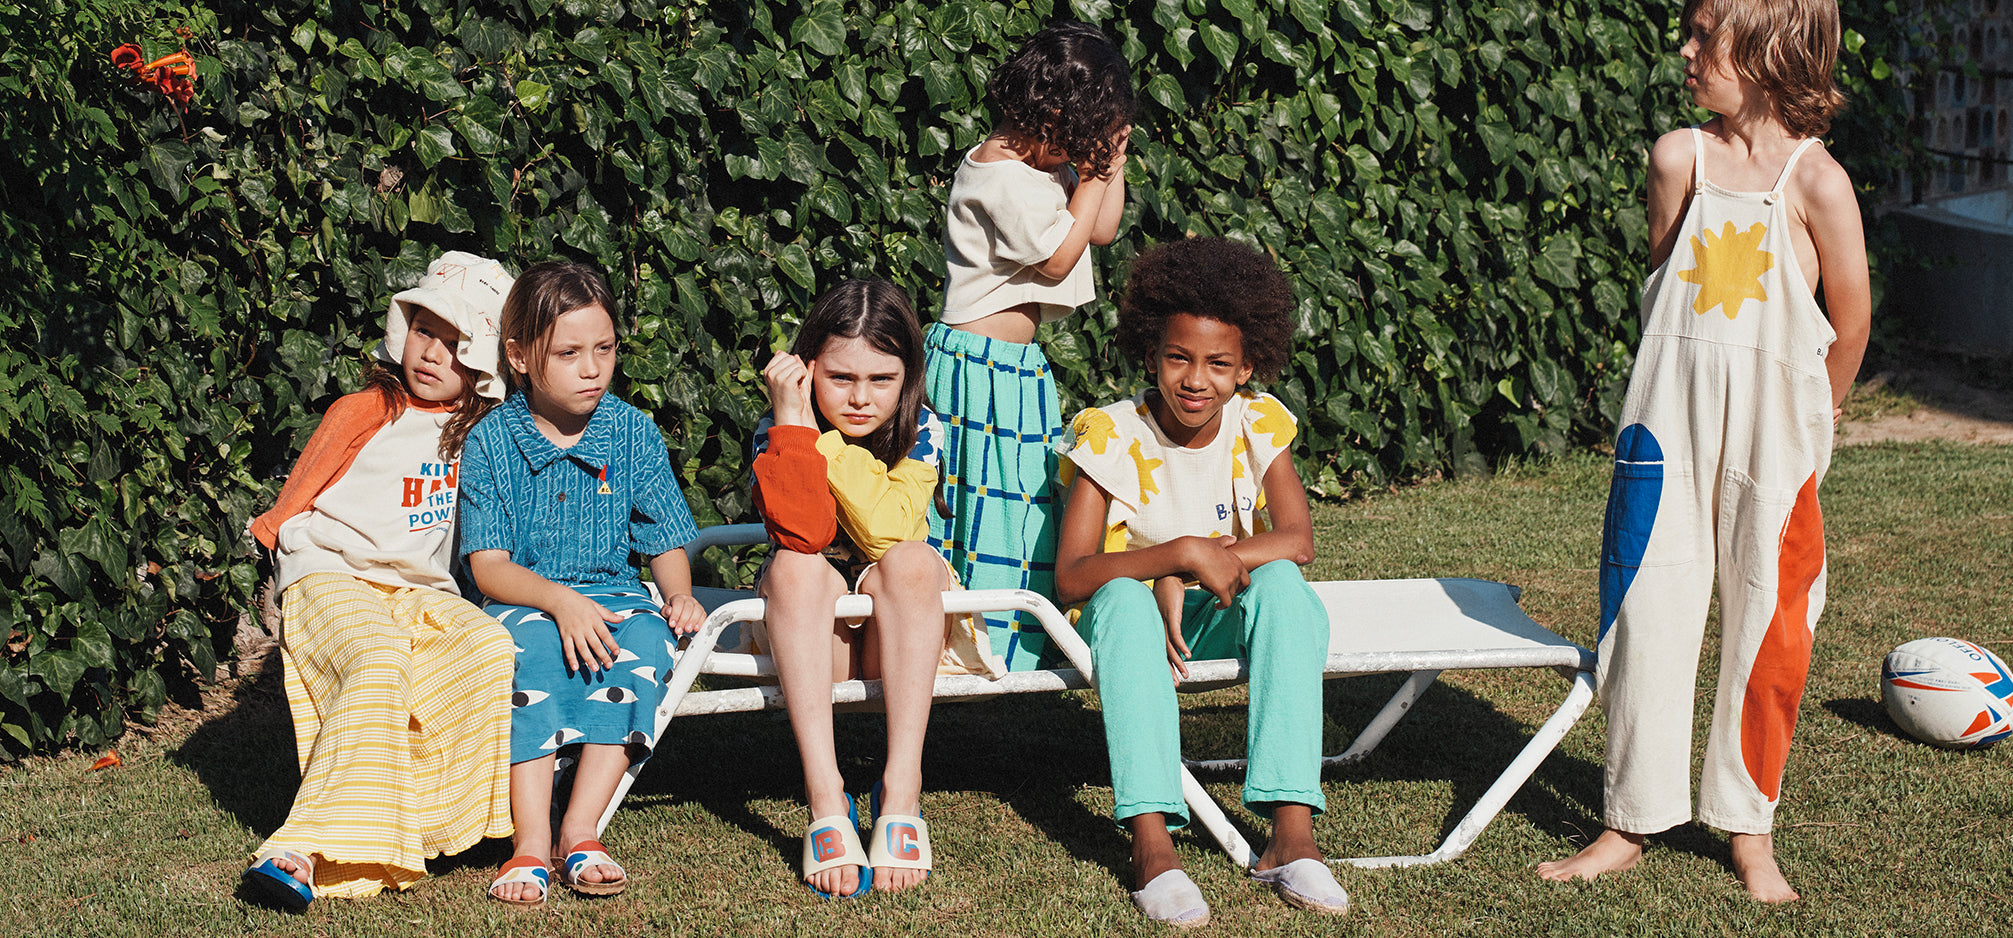 Children sitting outside on a lawn chair.